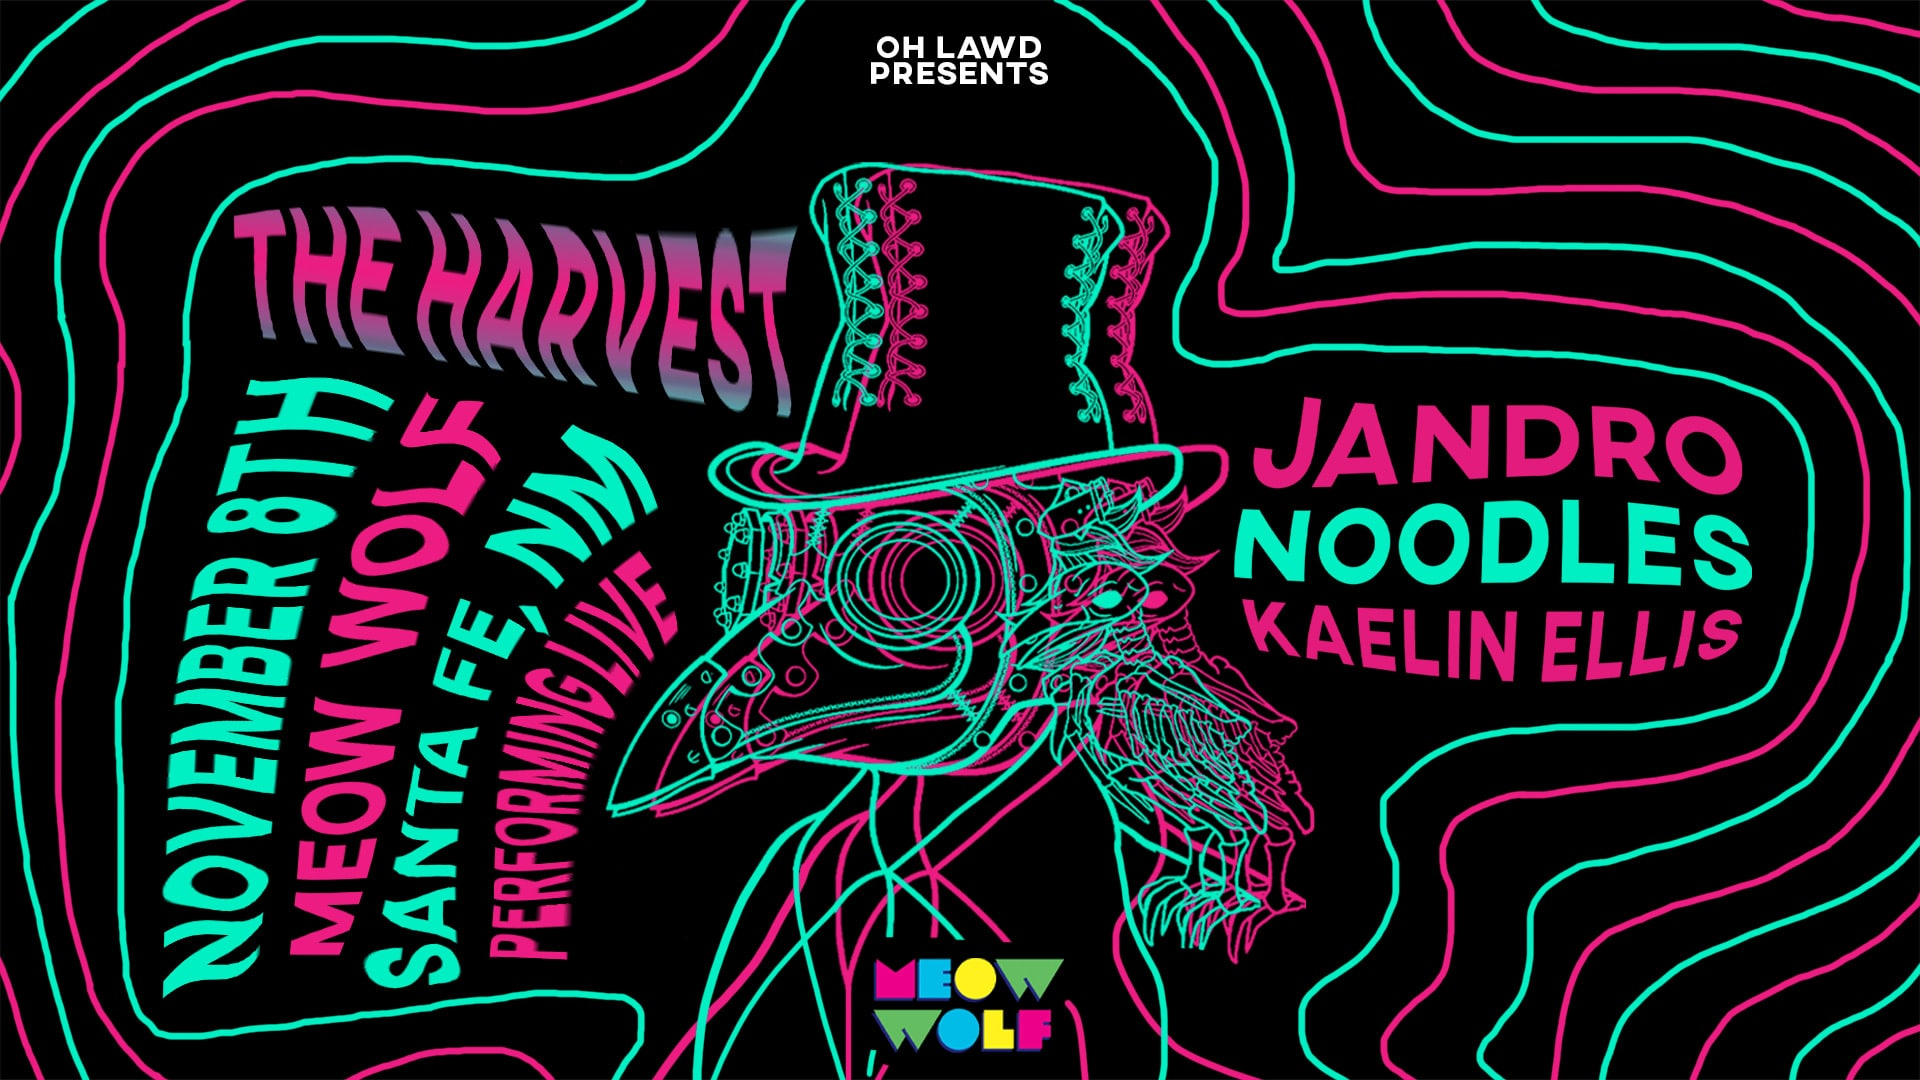 The Harvest: Noodles, Jandro & Kaelin Ellis Presented by Oh Lawd